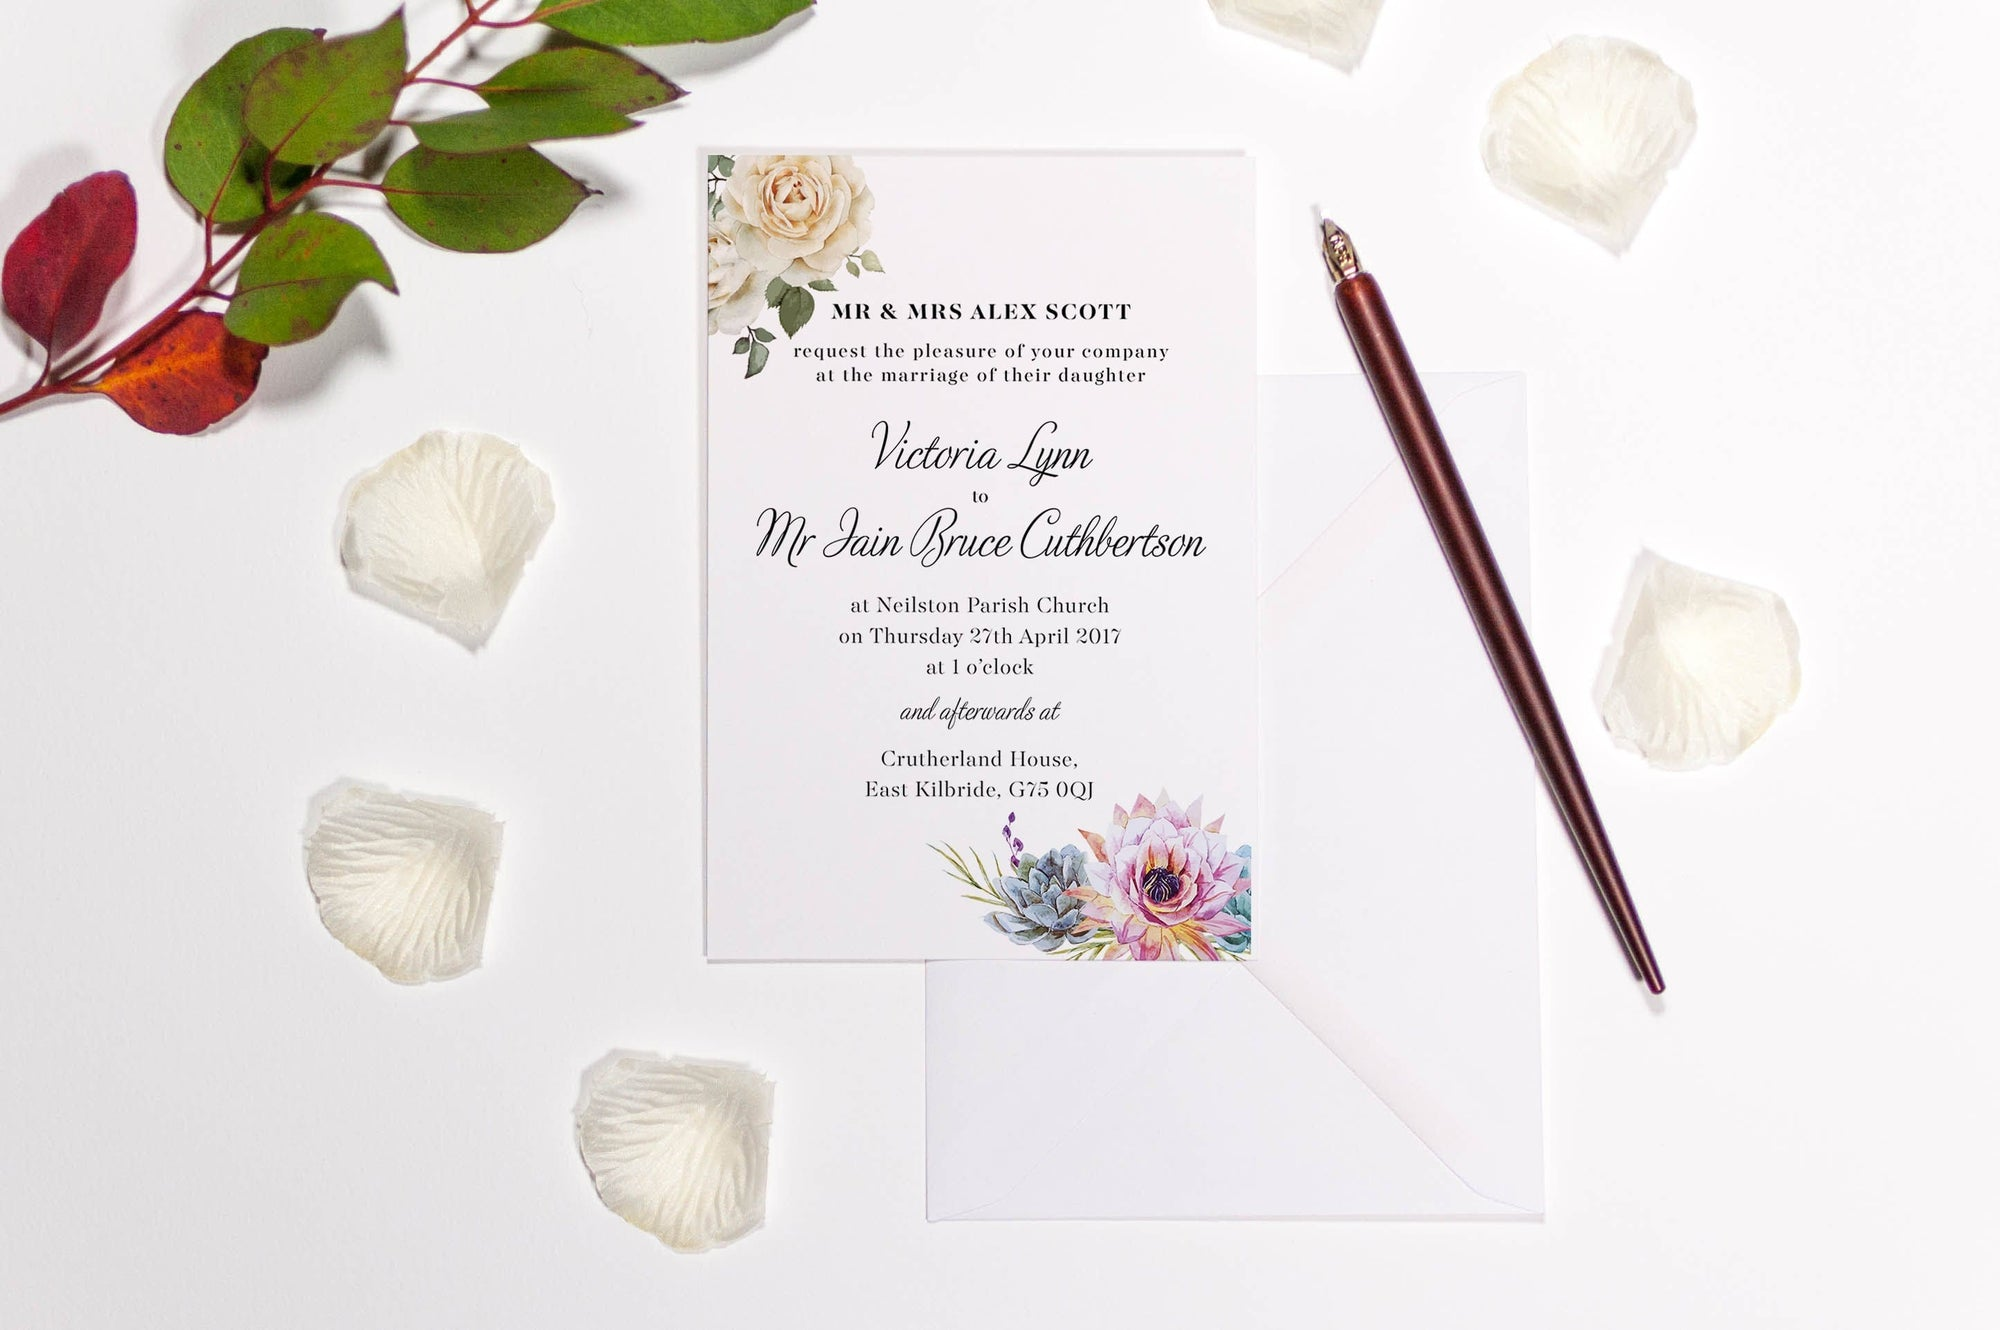 luxuryweddinginvitationsbycombossa HD Printed Wedding Invitations Sample Invitation £1.60 (Colour as shown) / Black Ink Botanic Pink Rose Wedding Invitation, HD Digital Print Sample